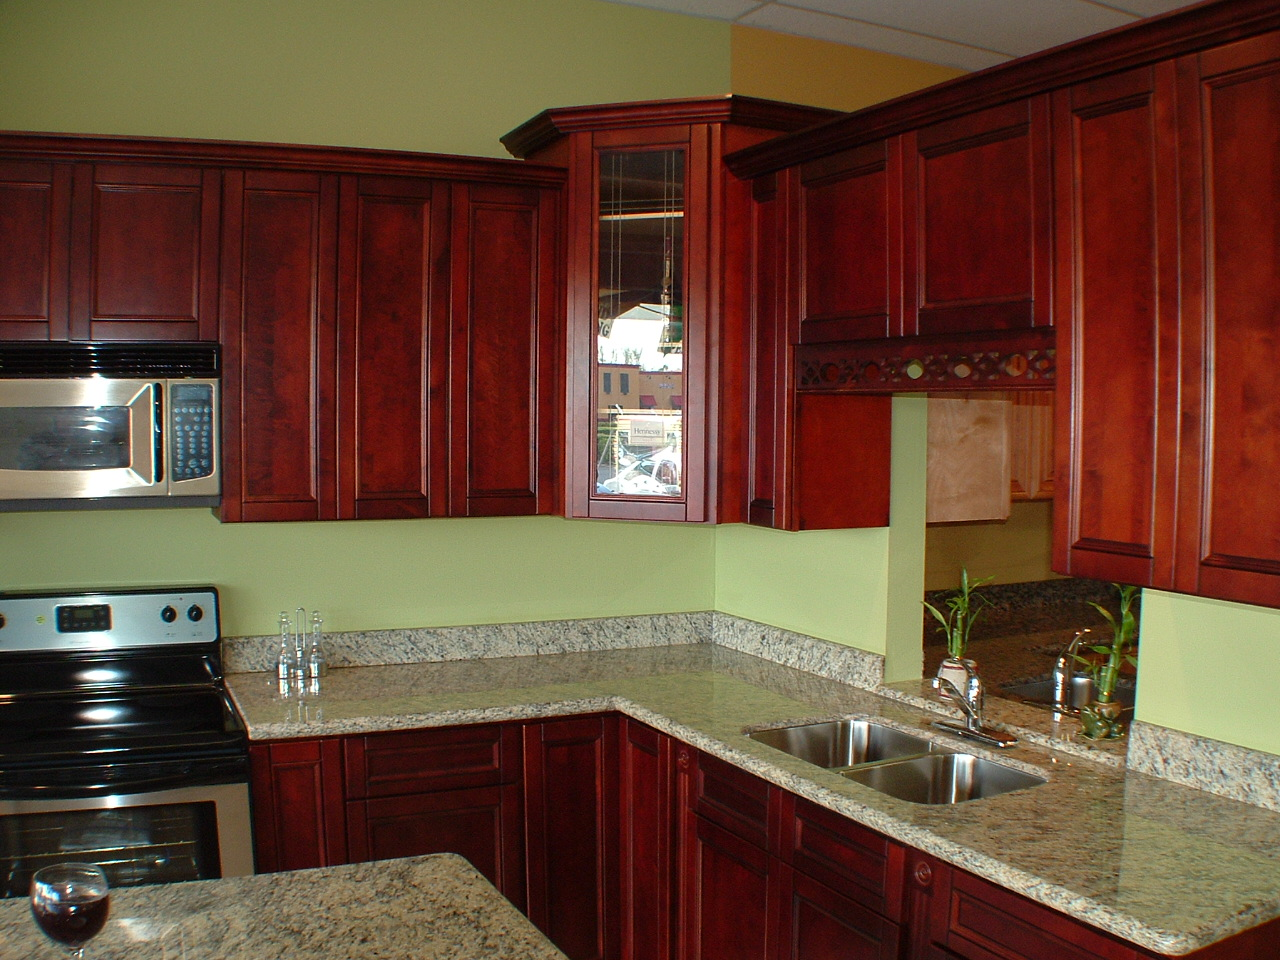 Cherry Wood Color Facts | Keystone Kitchen Cabinets ... |Red Cherry Kitchen Cabinets